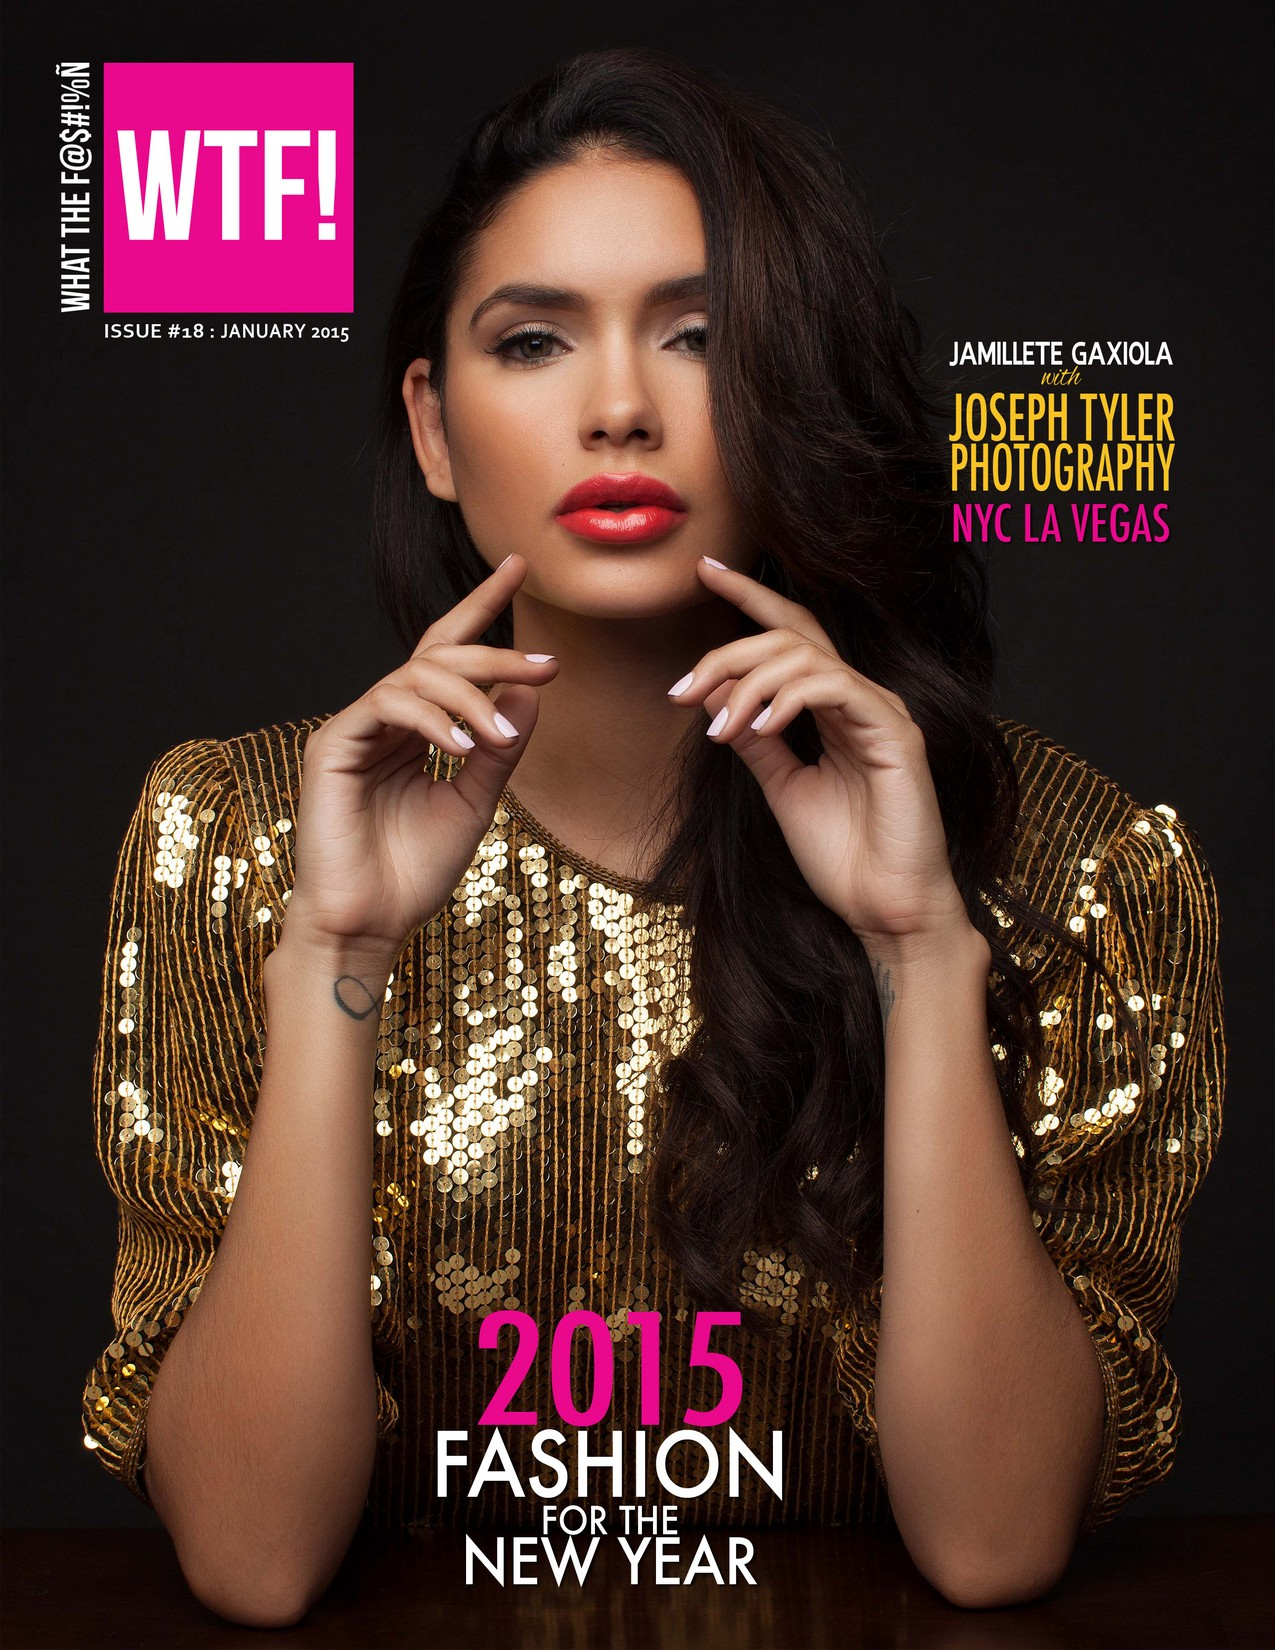 WTF Fashion Magazine | Spokane Fashion Photographer